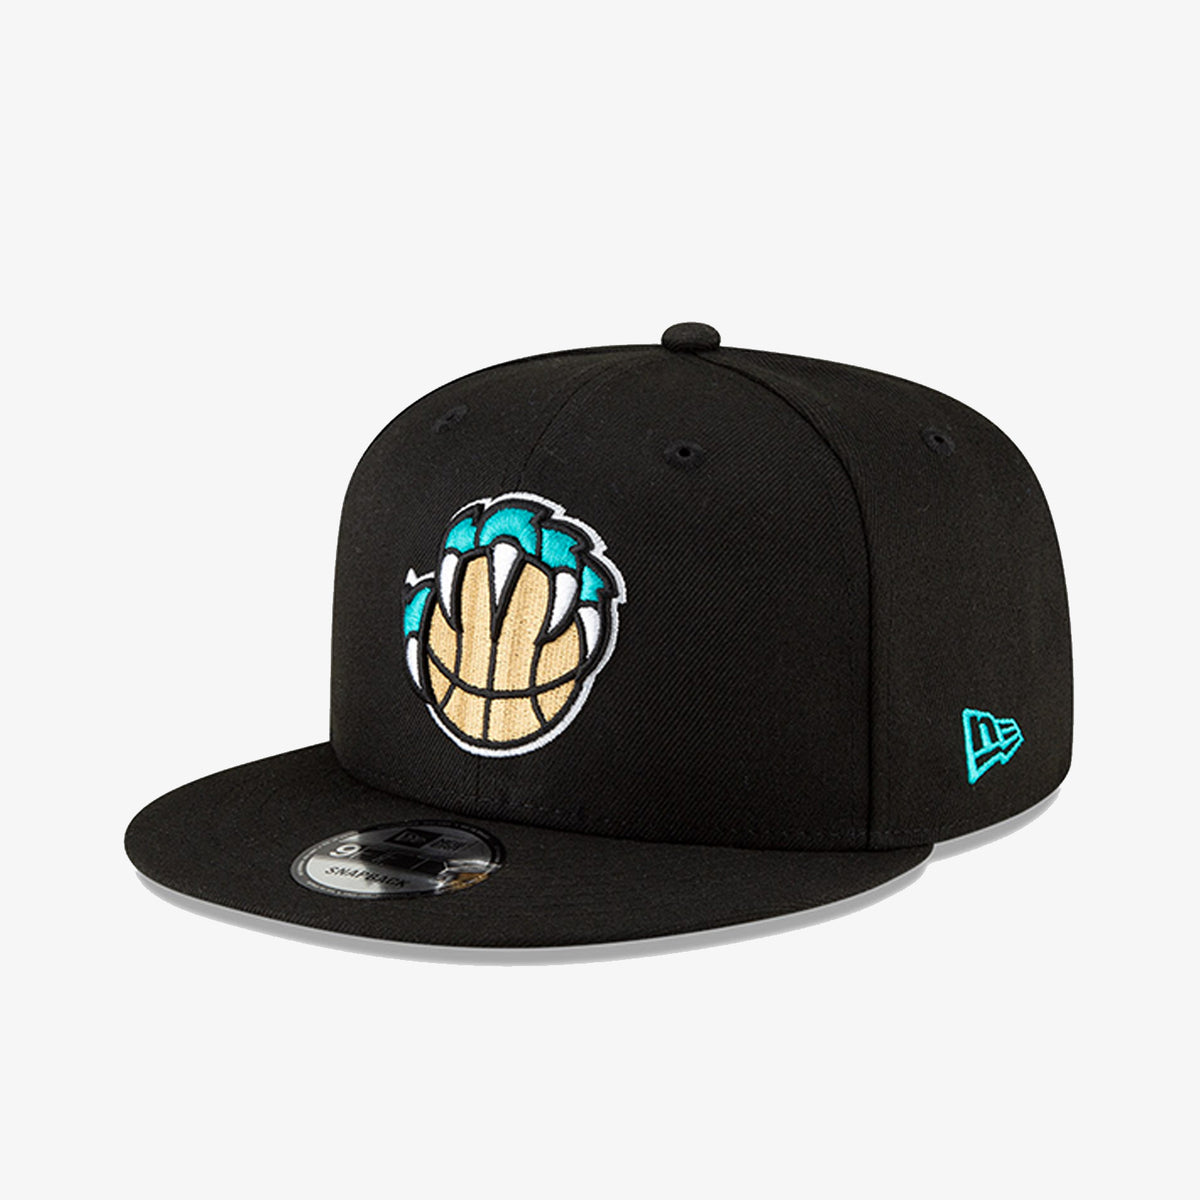 Memphis Grizzlies City Edition 950 Snapback - Black